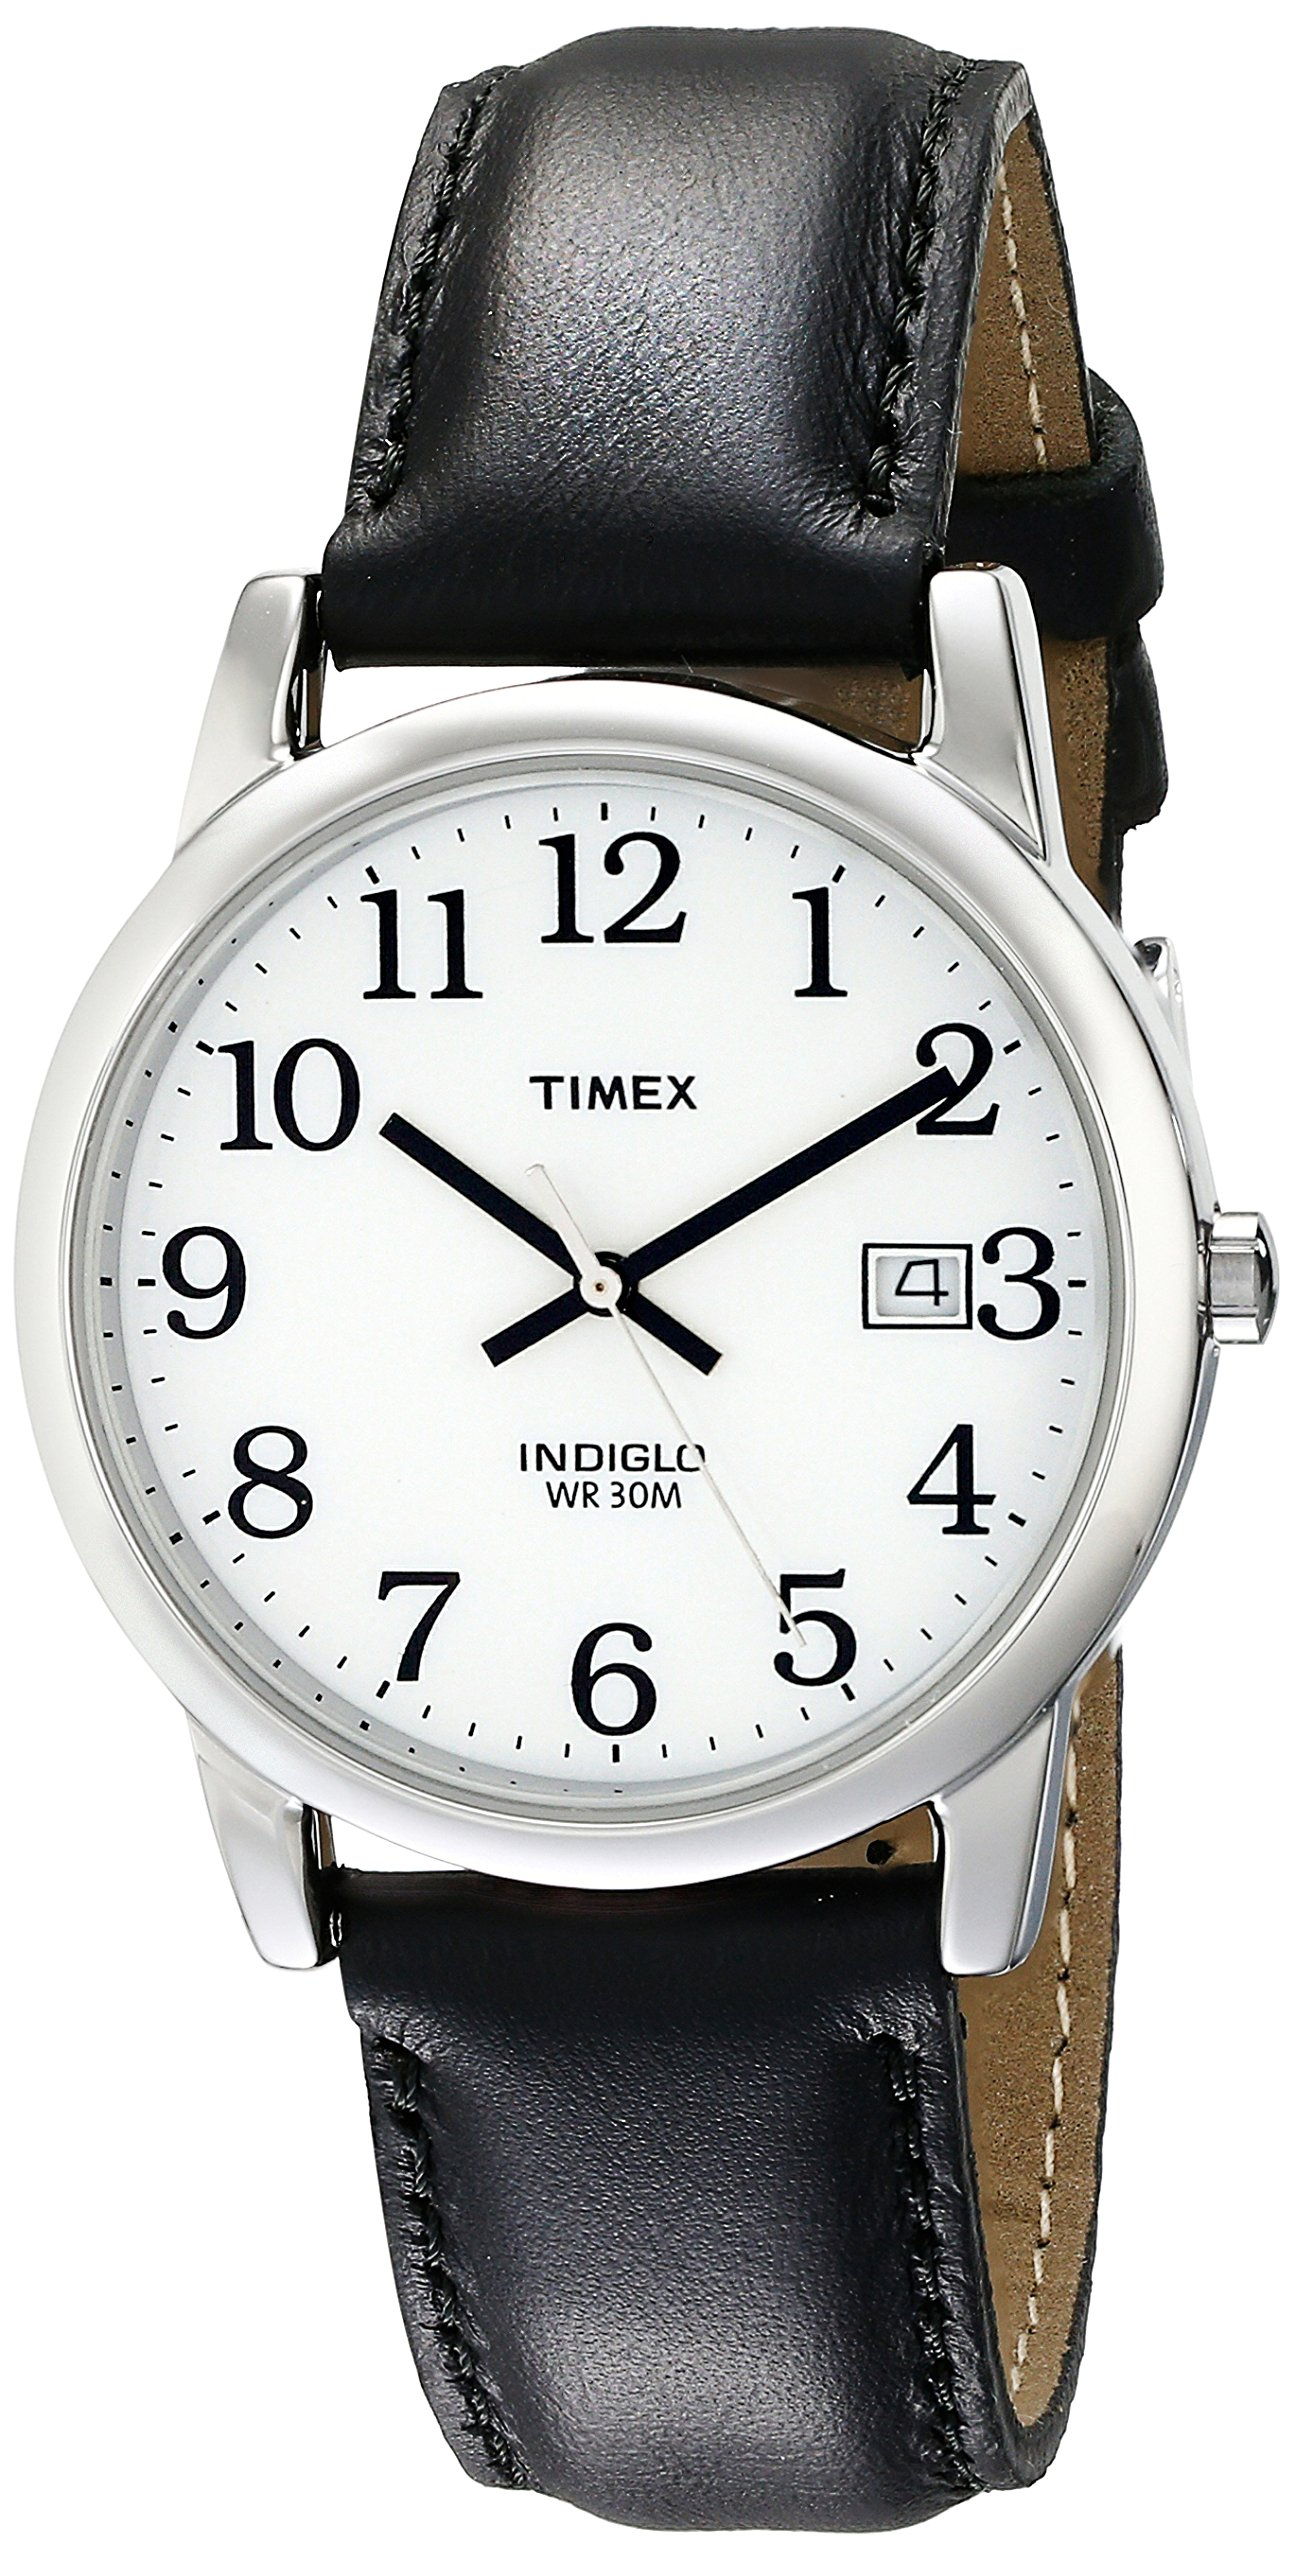 Timex Men's T2H281 Easy Reader Black Leather Strap Watch by Timex